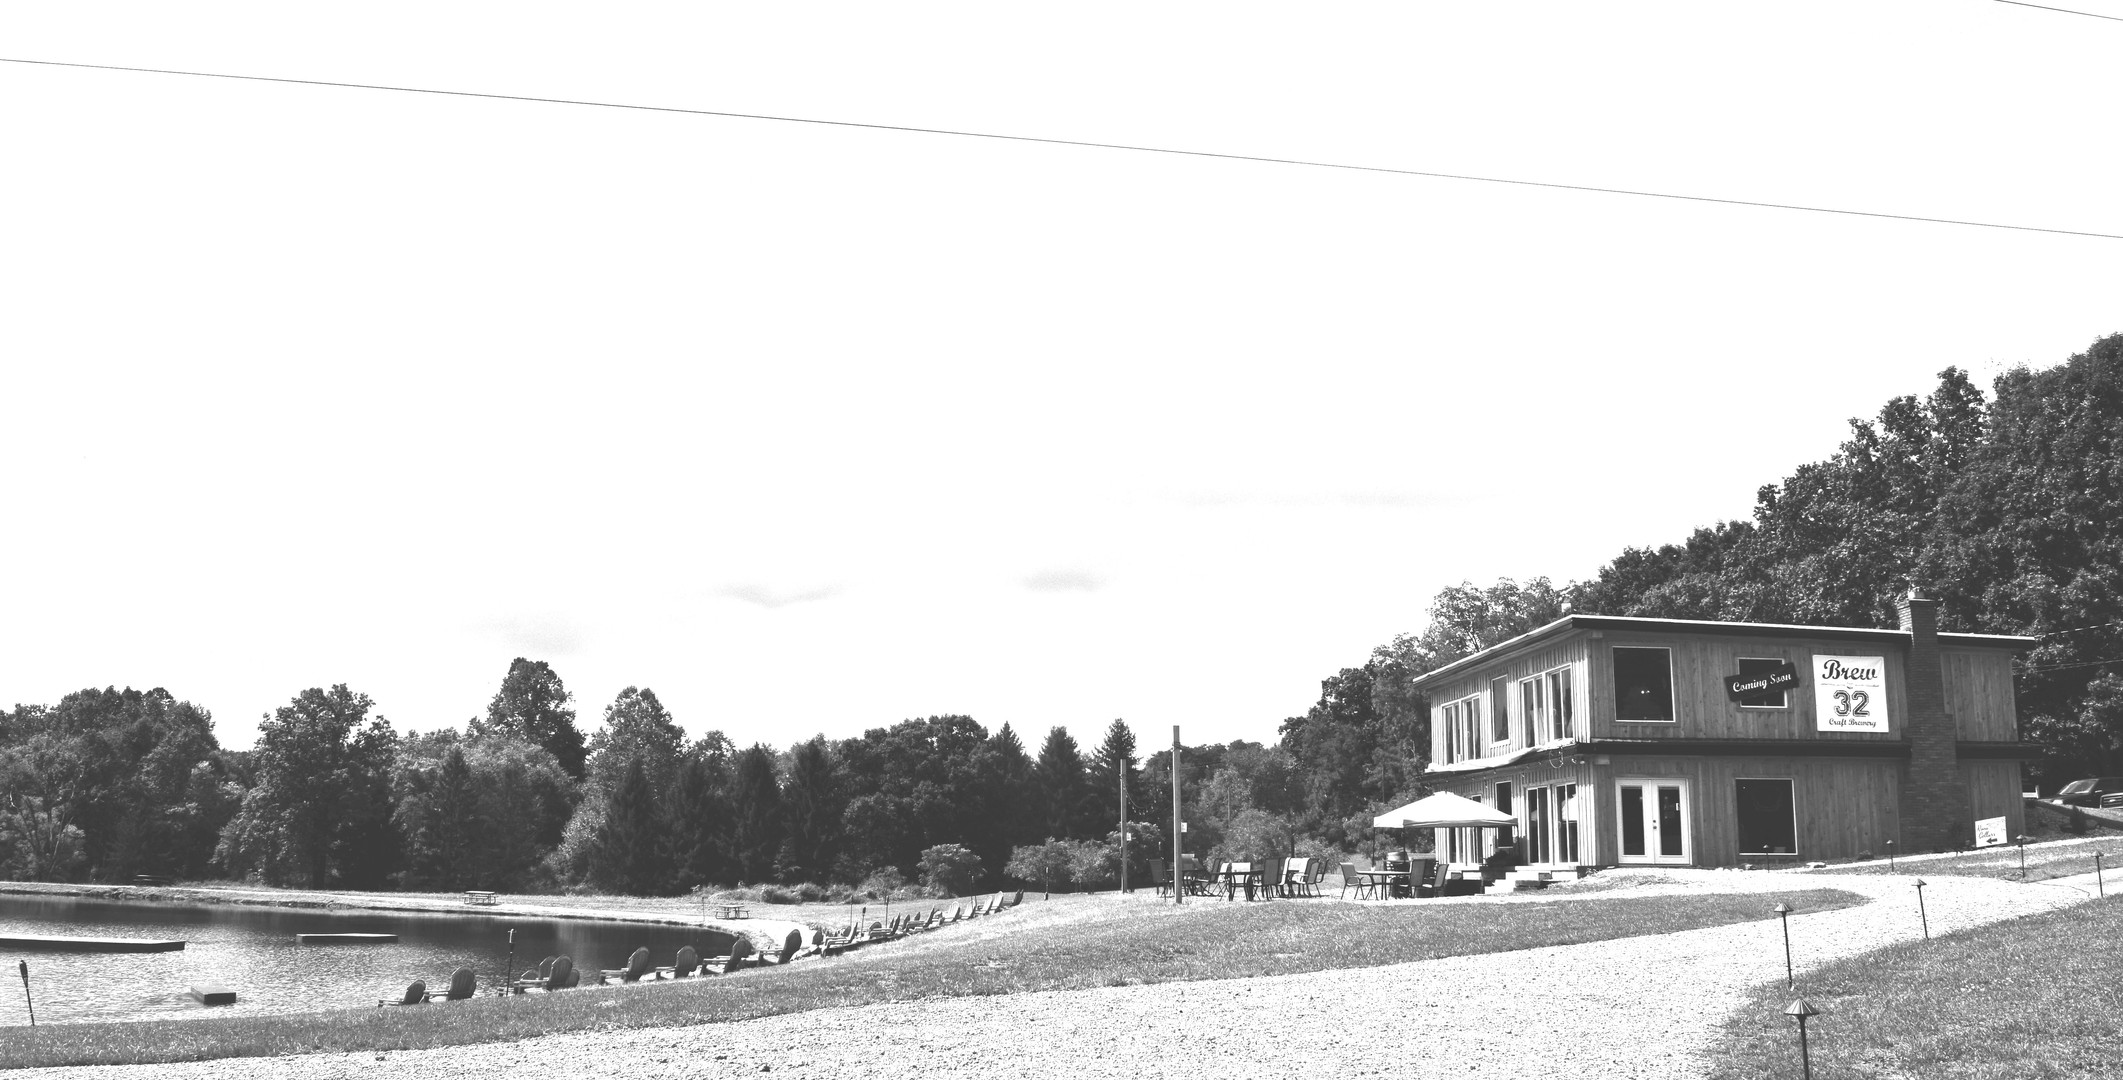 bw building and lake.jpg